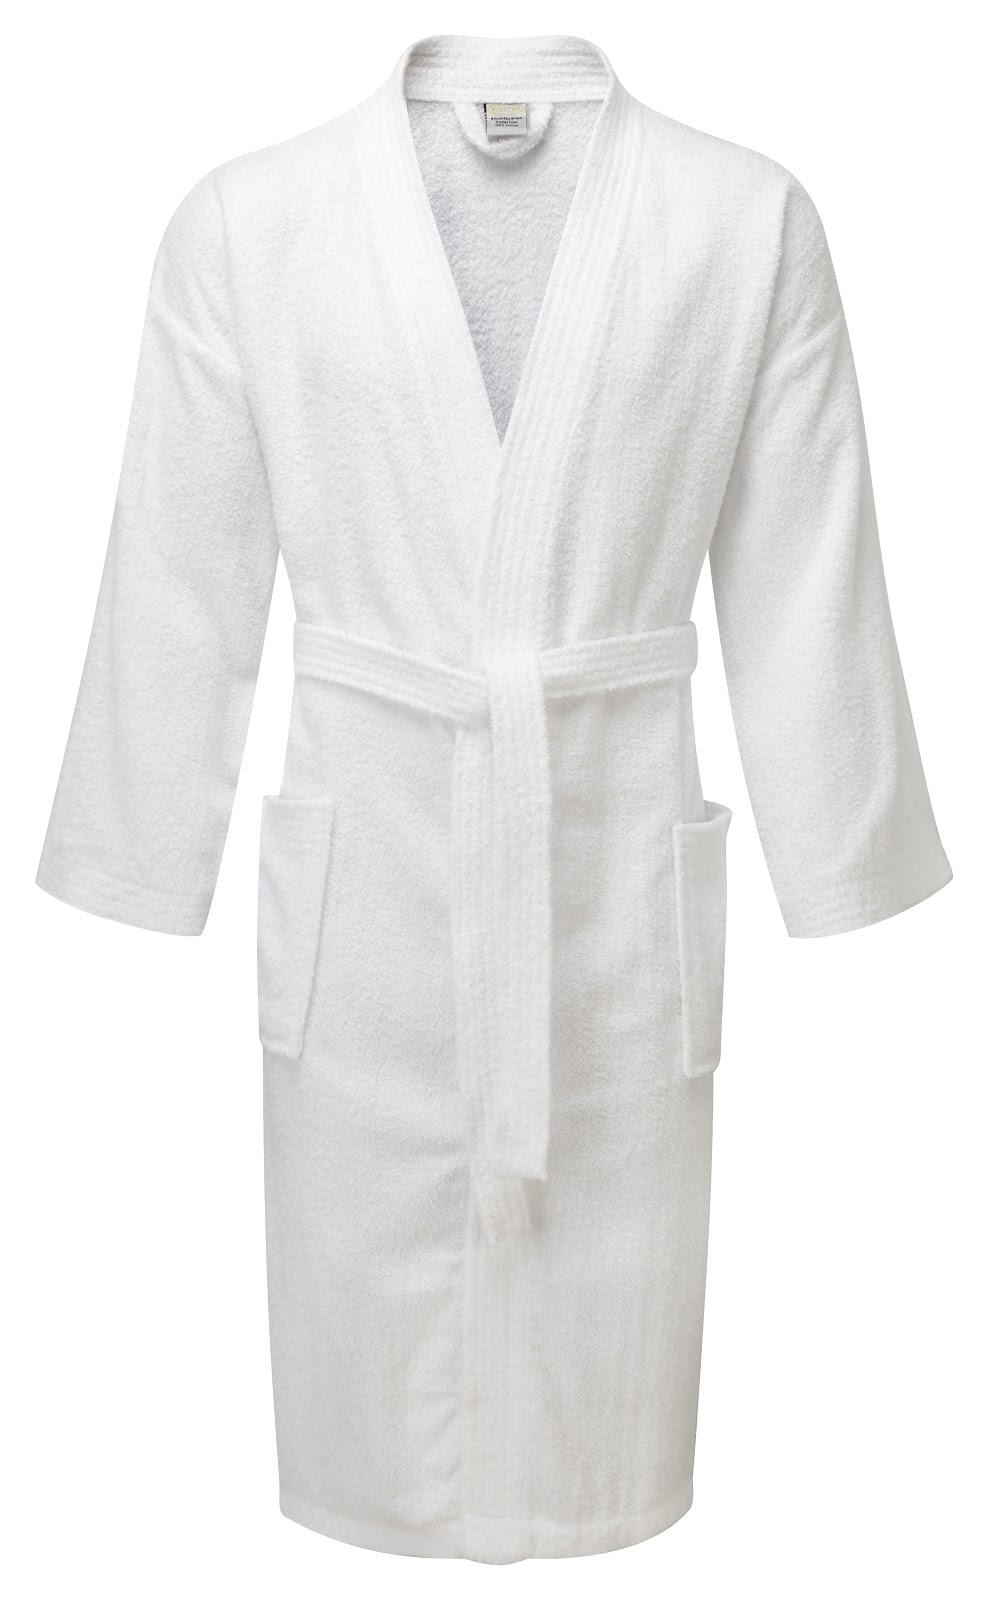 Dressing Gown Buying Guide The Towel Shop